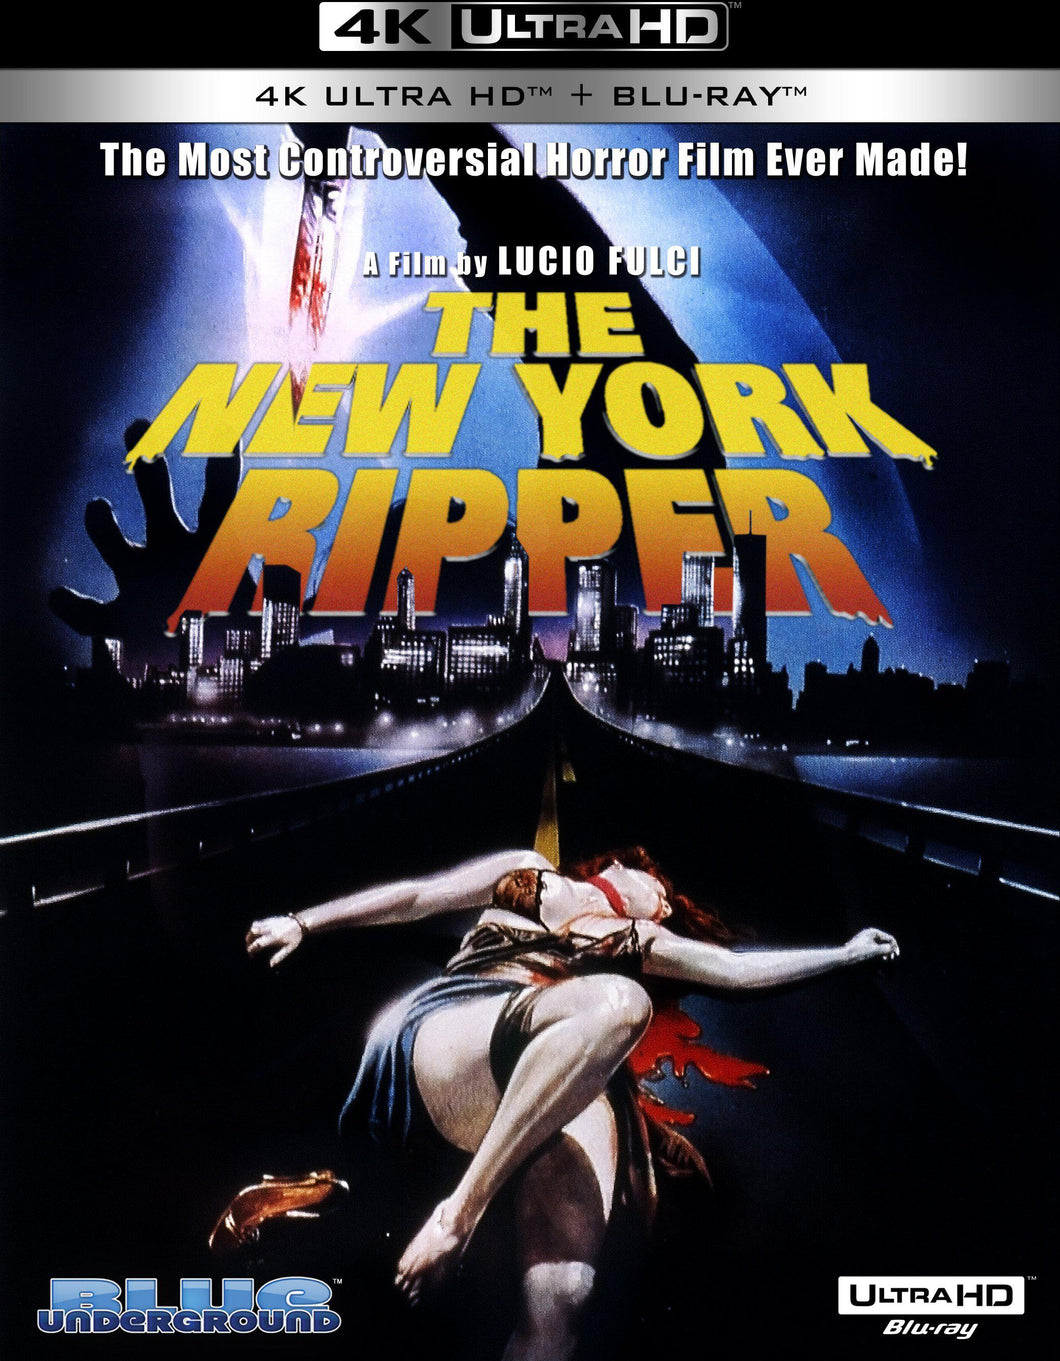 The New York Ripper 4K UHD (2 Disc Set) (Blu-ray): Ronin Flix